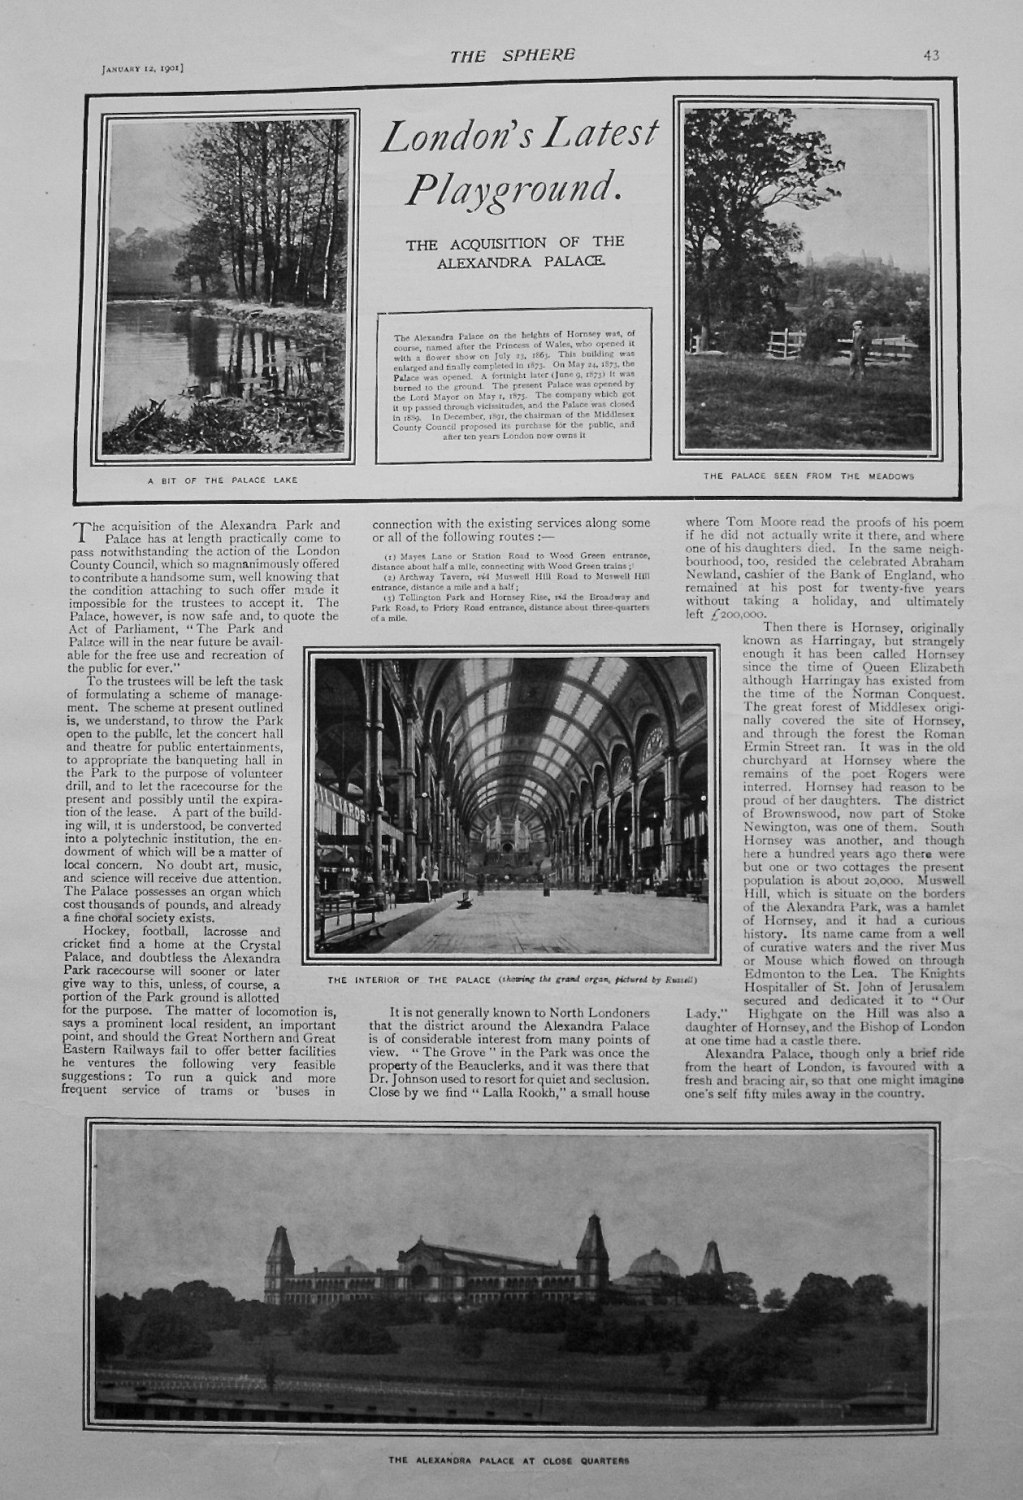 London's Latest Playground : The Acquisition of Alexandra Palace. 1901